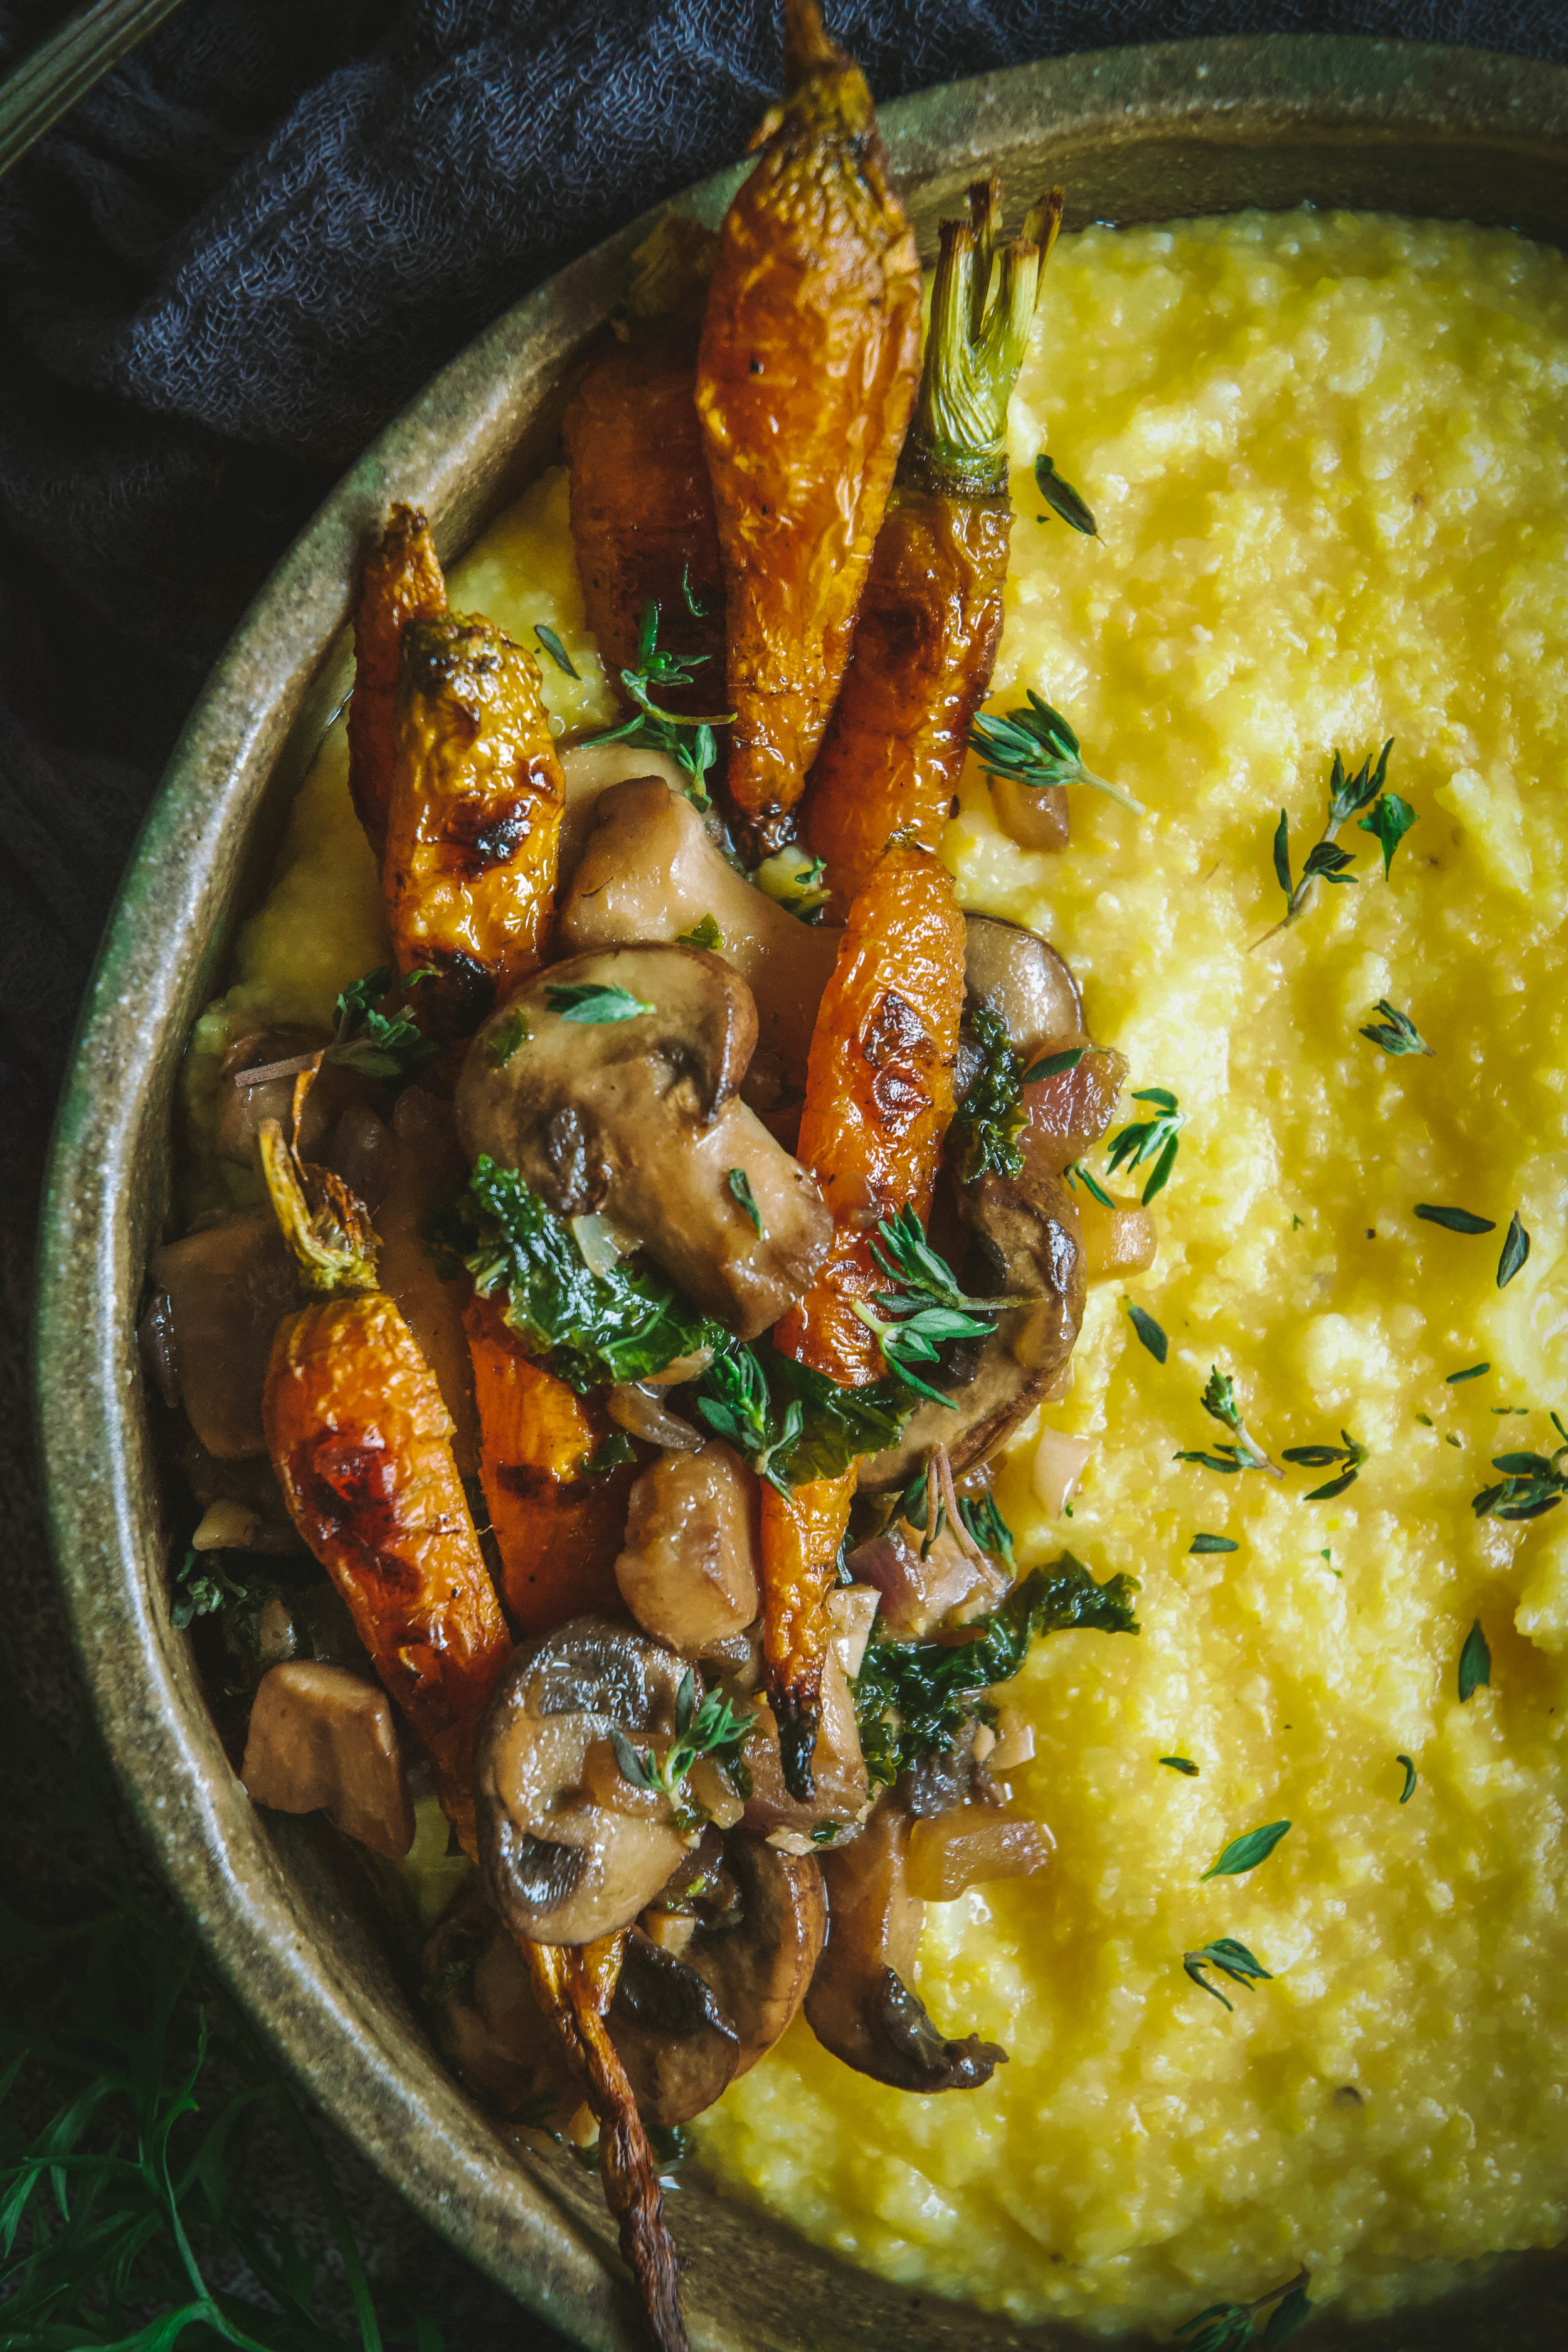 Roasted carrots and mushrooms over polenta